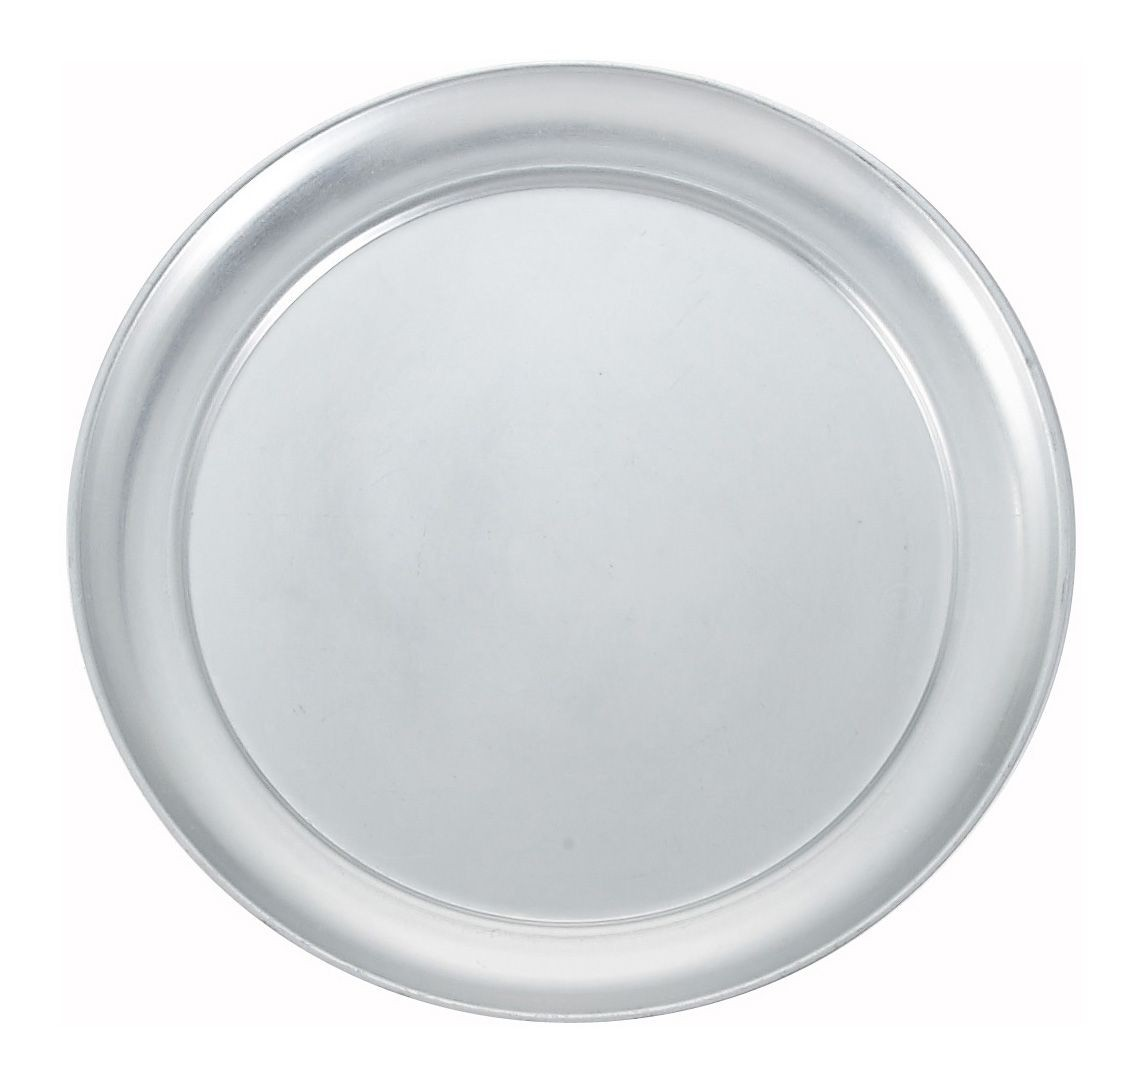 Wide-Rimmed Aluminum Pizza Pan - 11